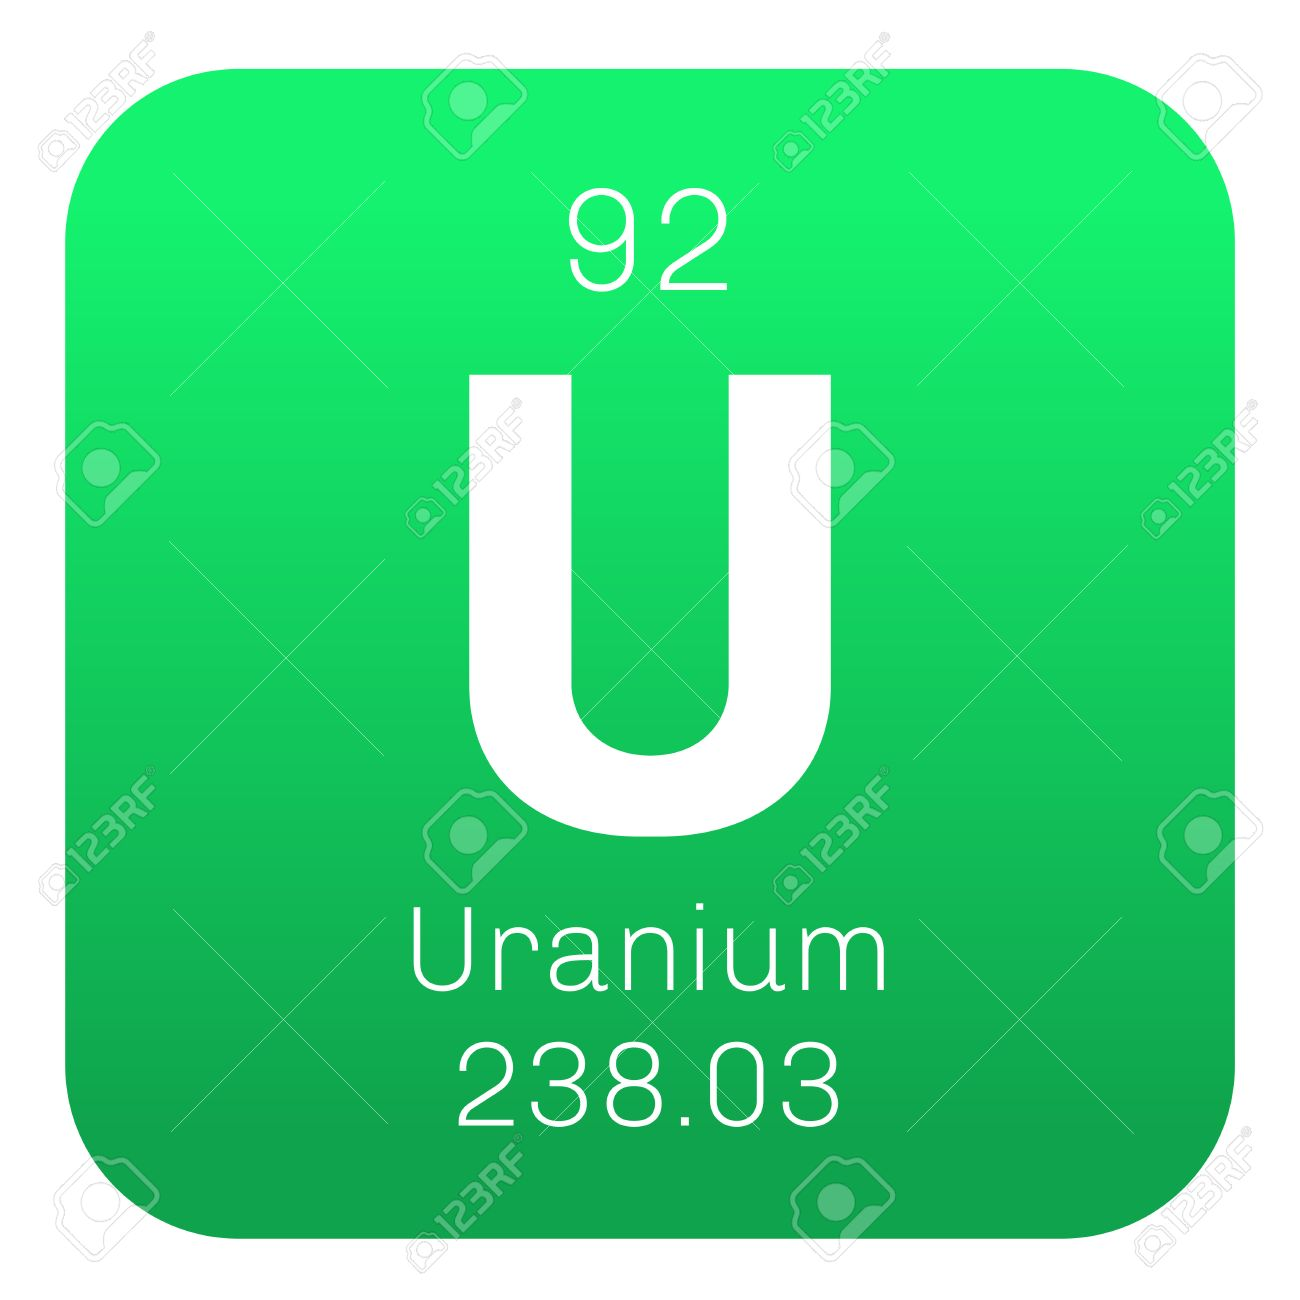 Uranium chemical element uranium is weakly radioactive metal uranium chemical element uranium is weakly radioactive metal colored icon with atomic number and buycottarizona Gallery